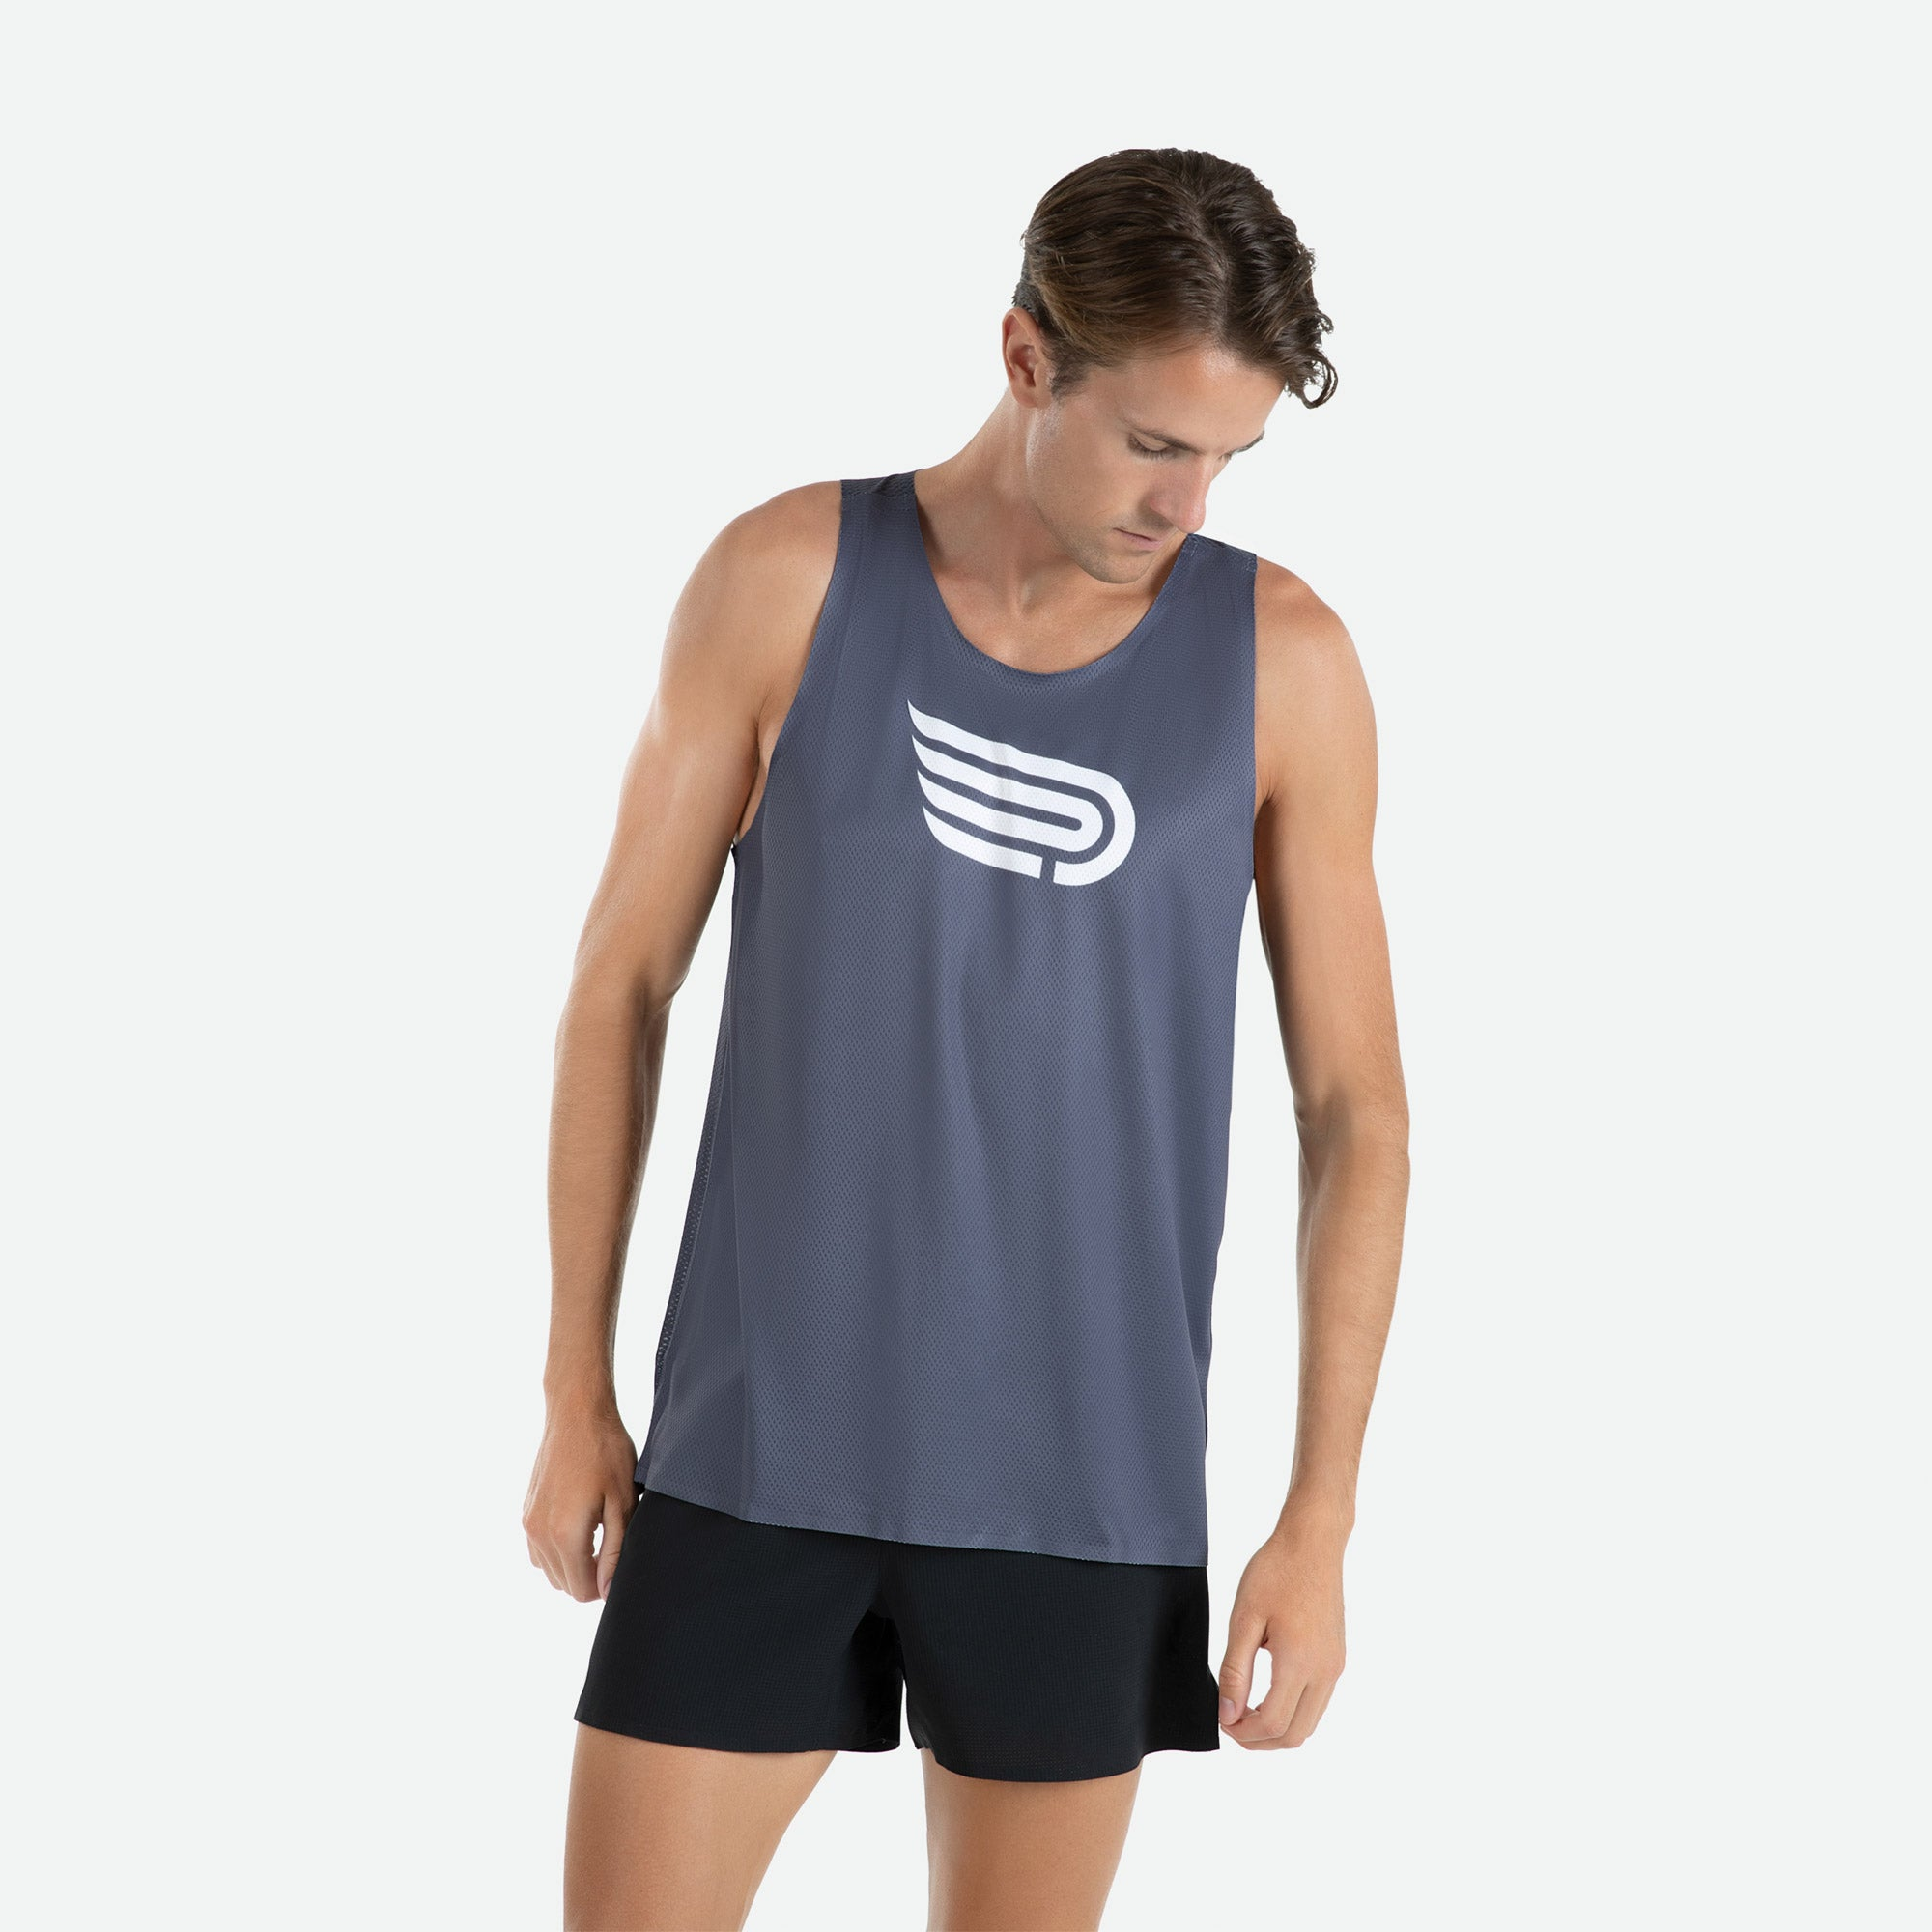 Singlet men's Pressio Ārahi dark grey/white constructed of high filament mechanical knit fabric for unrestricted freedom of movement, enhanced comfort, and optimal hand feel.